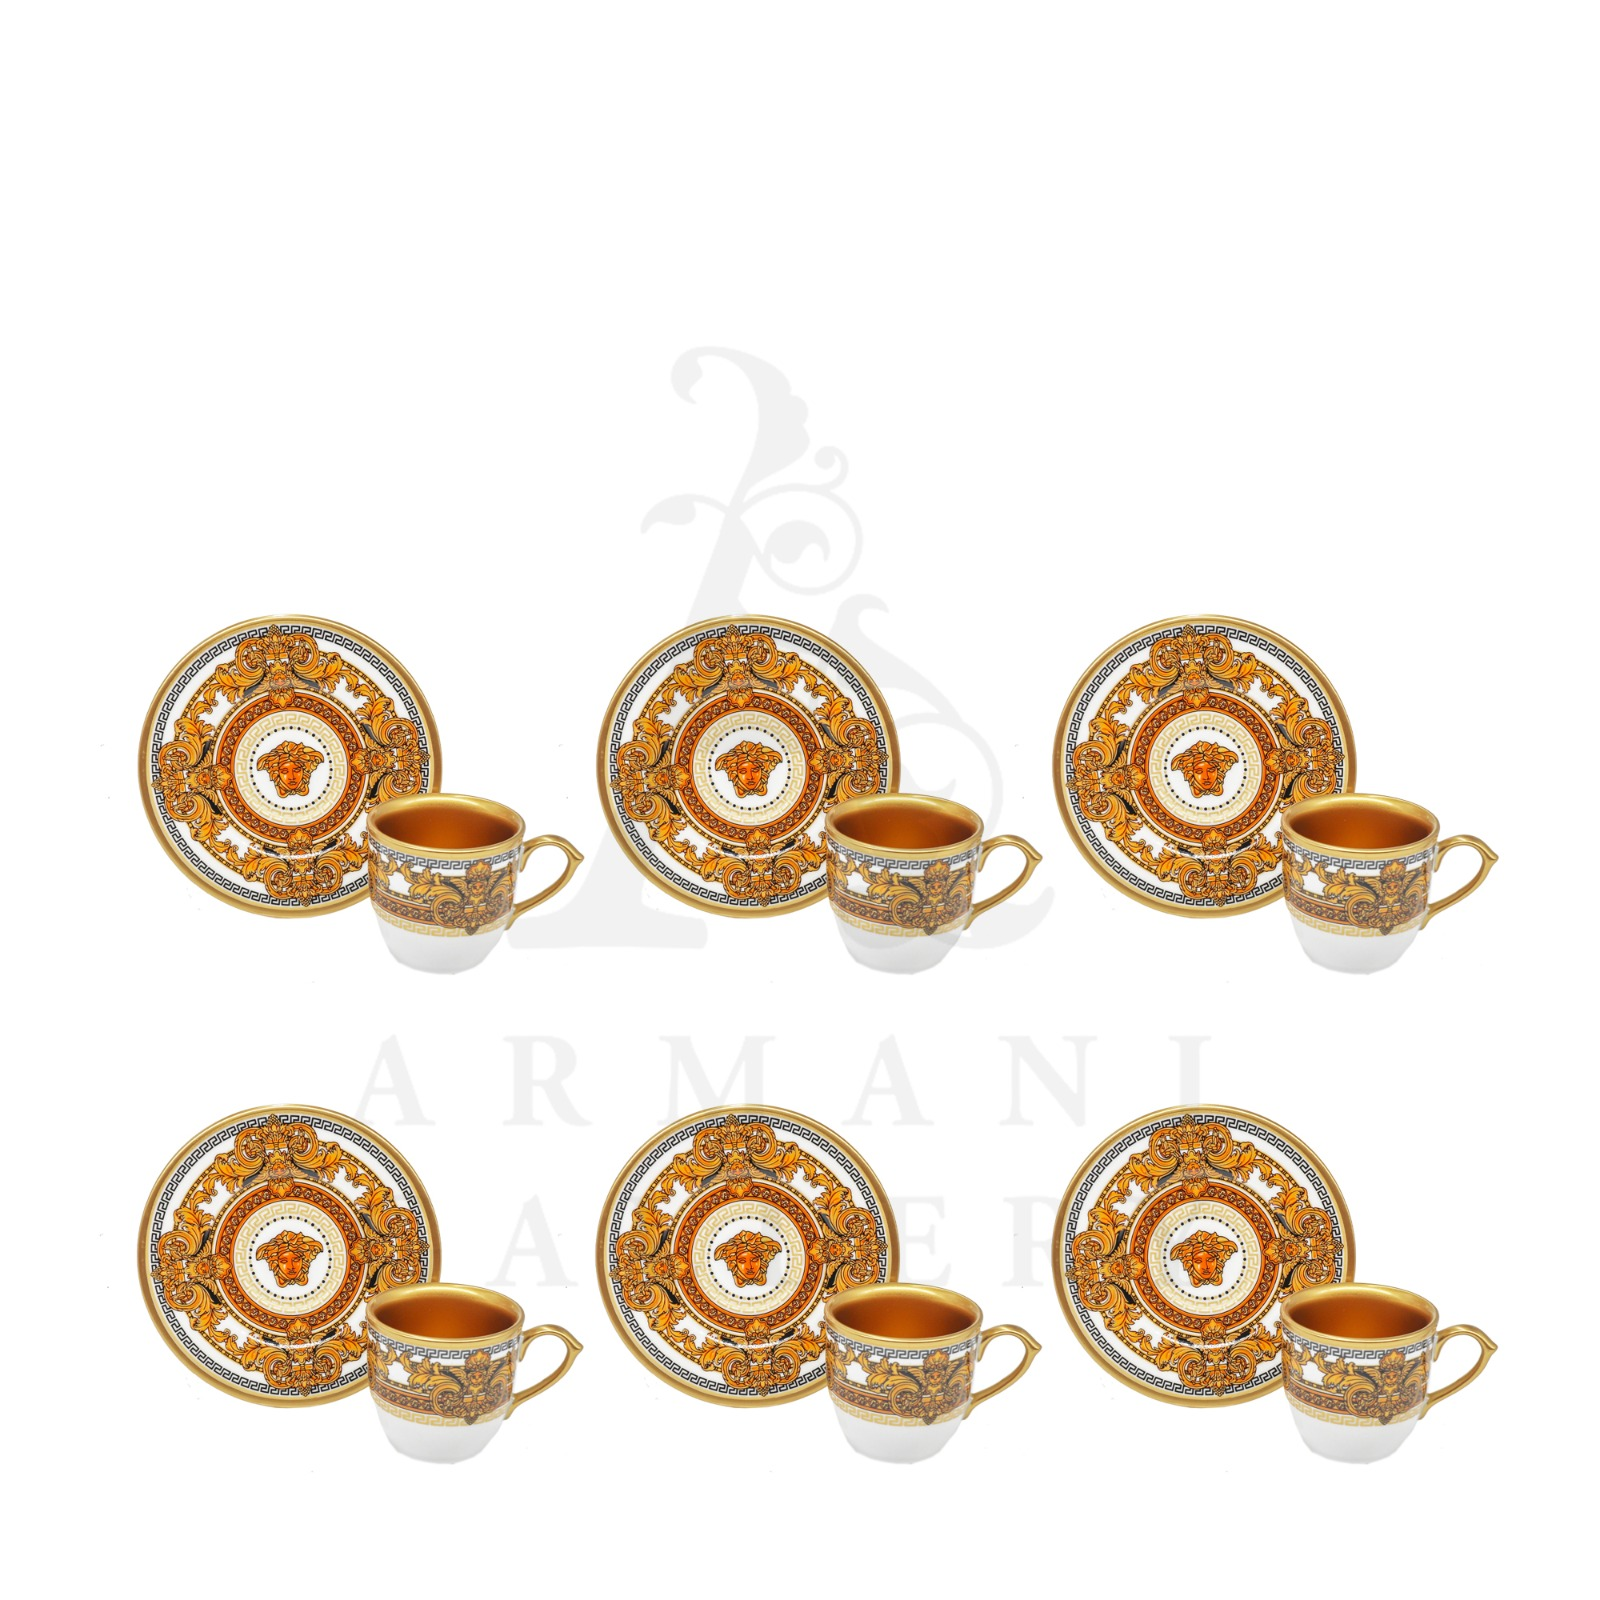 Buy Turkish Coffee Set Versace Orange 12 Pcs